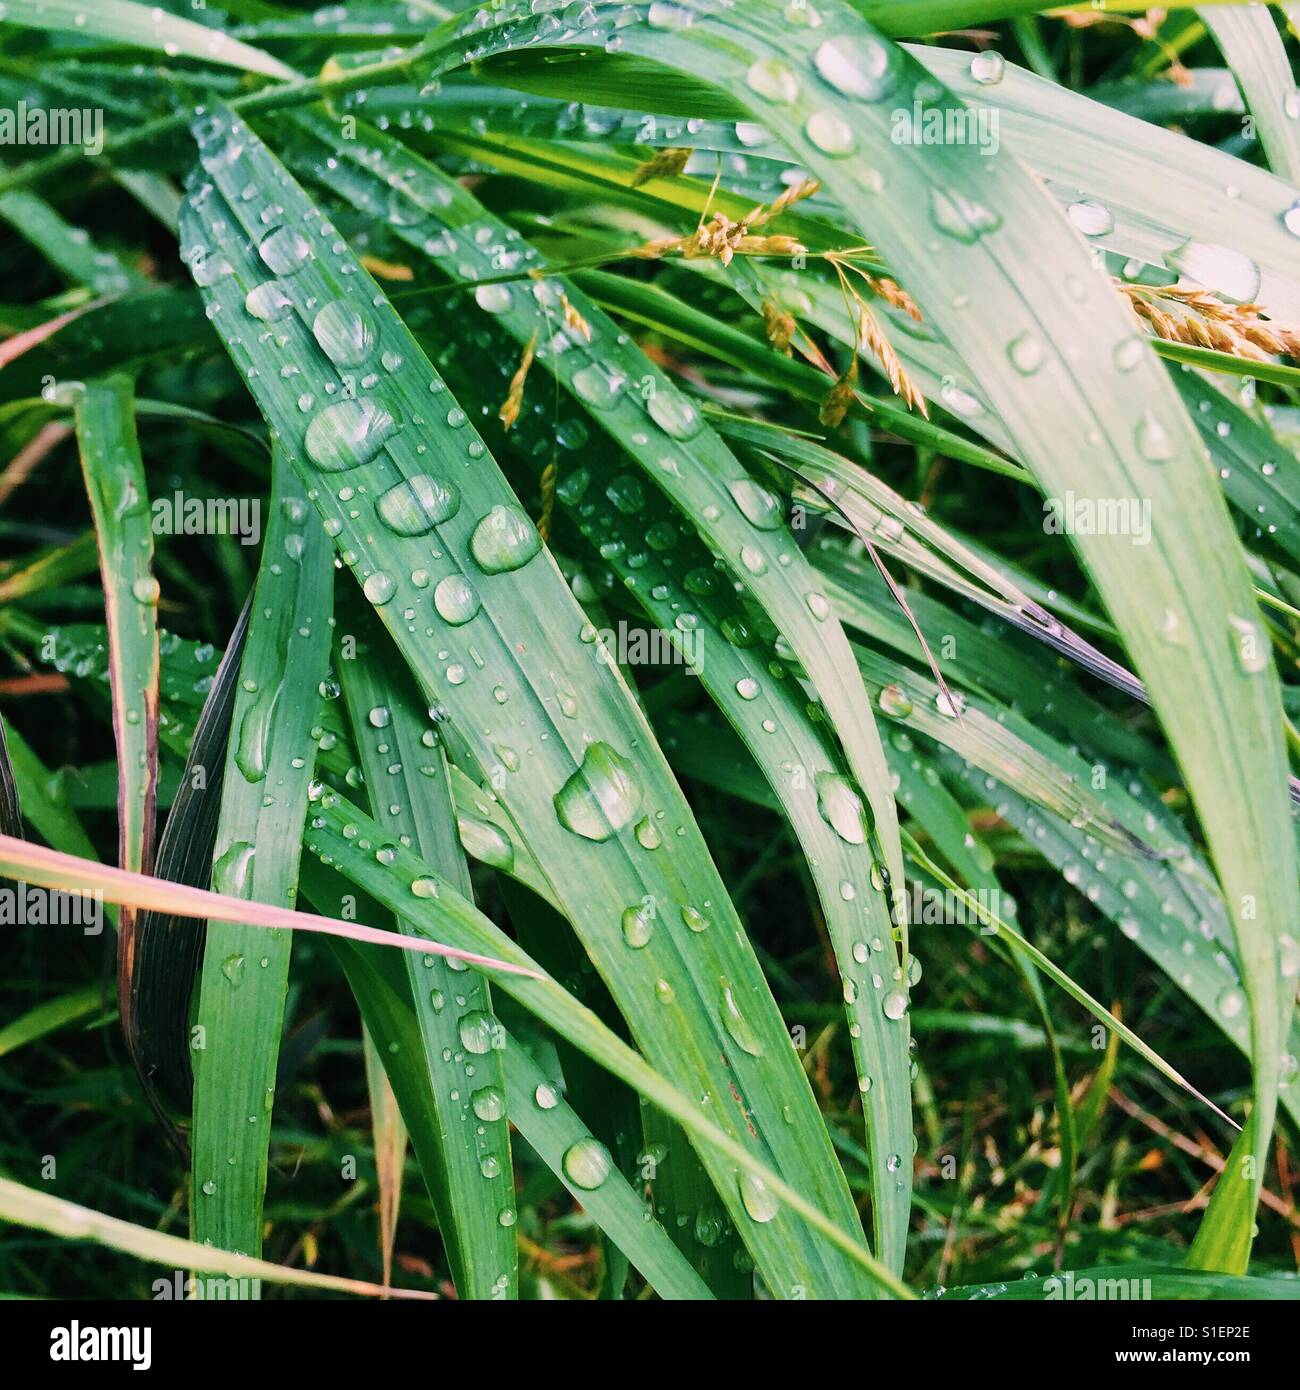 A Close up of water droplets on blades of grass. - Stock Image